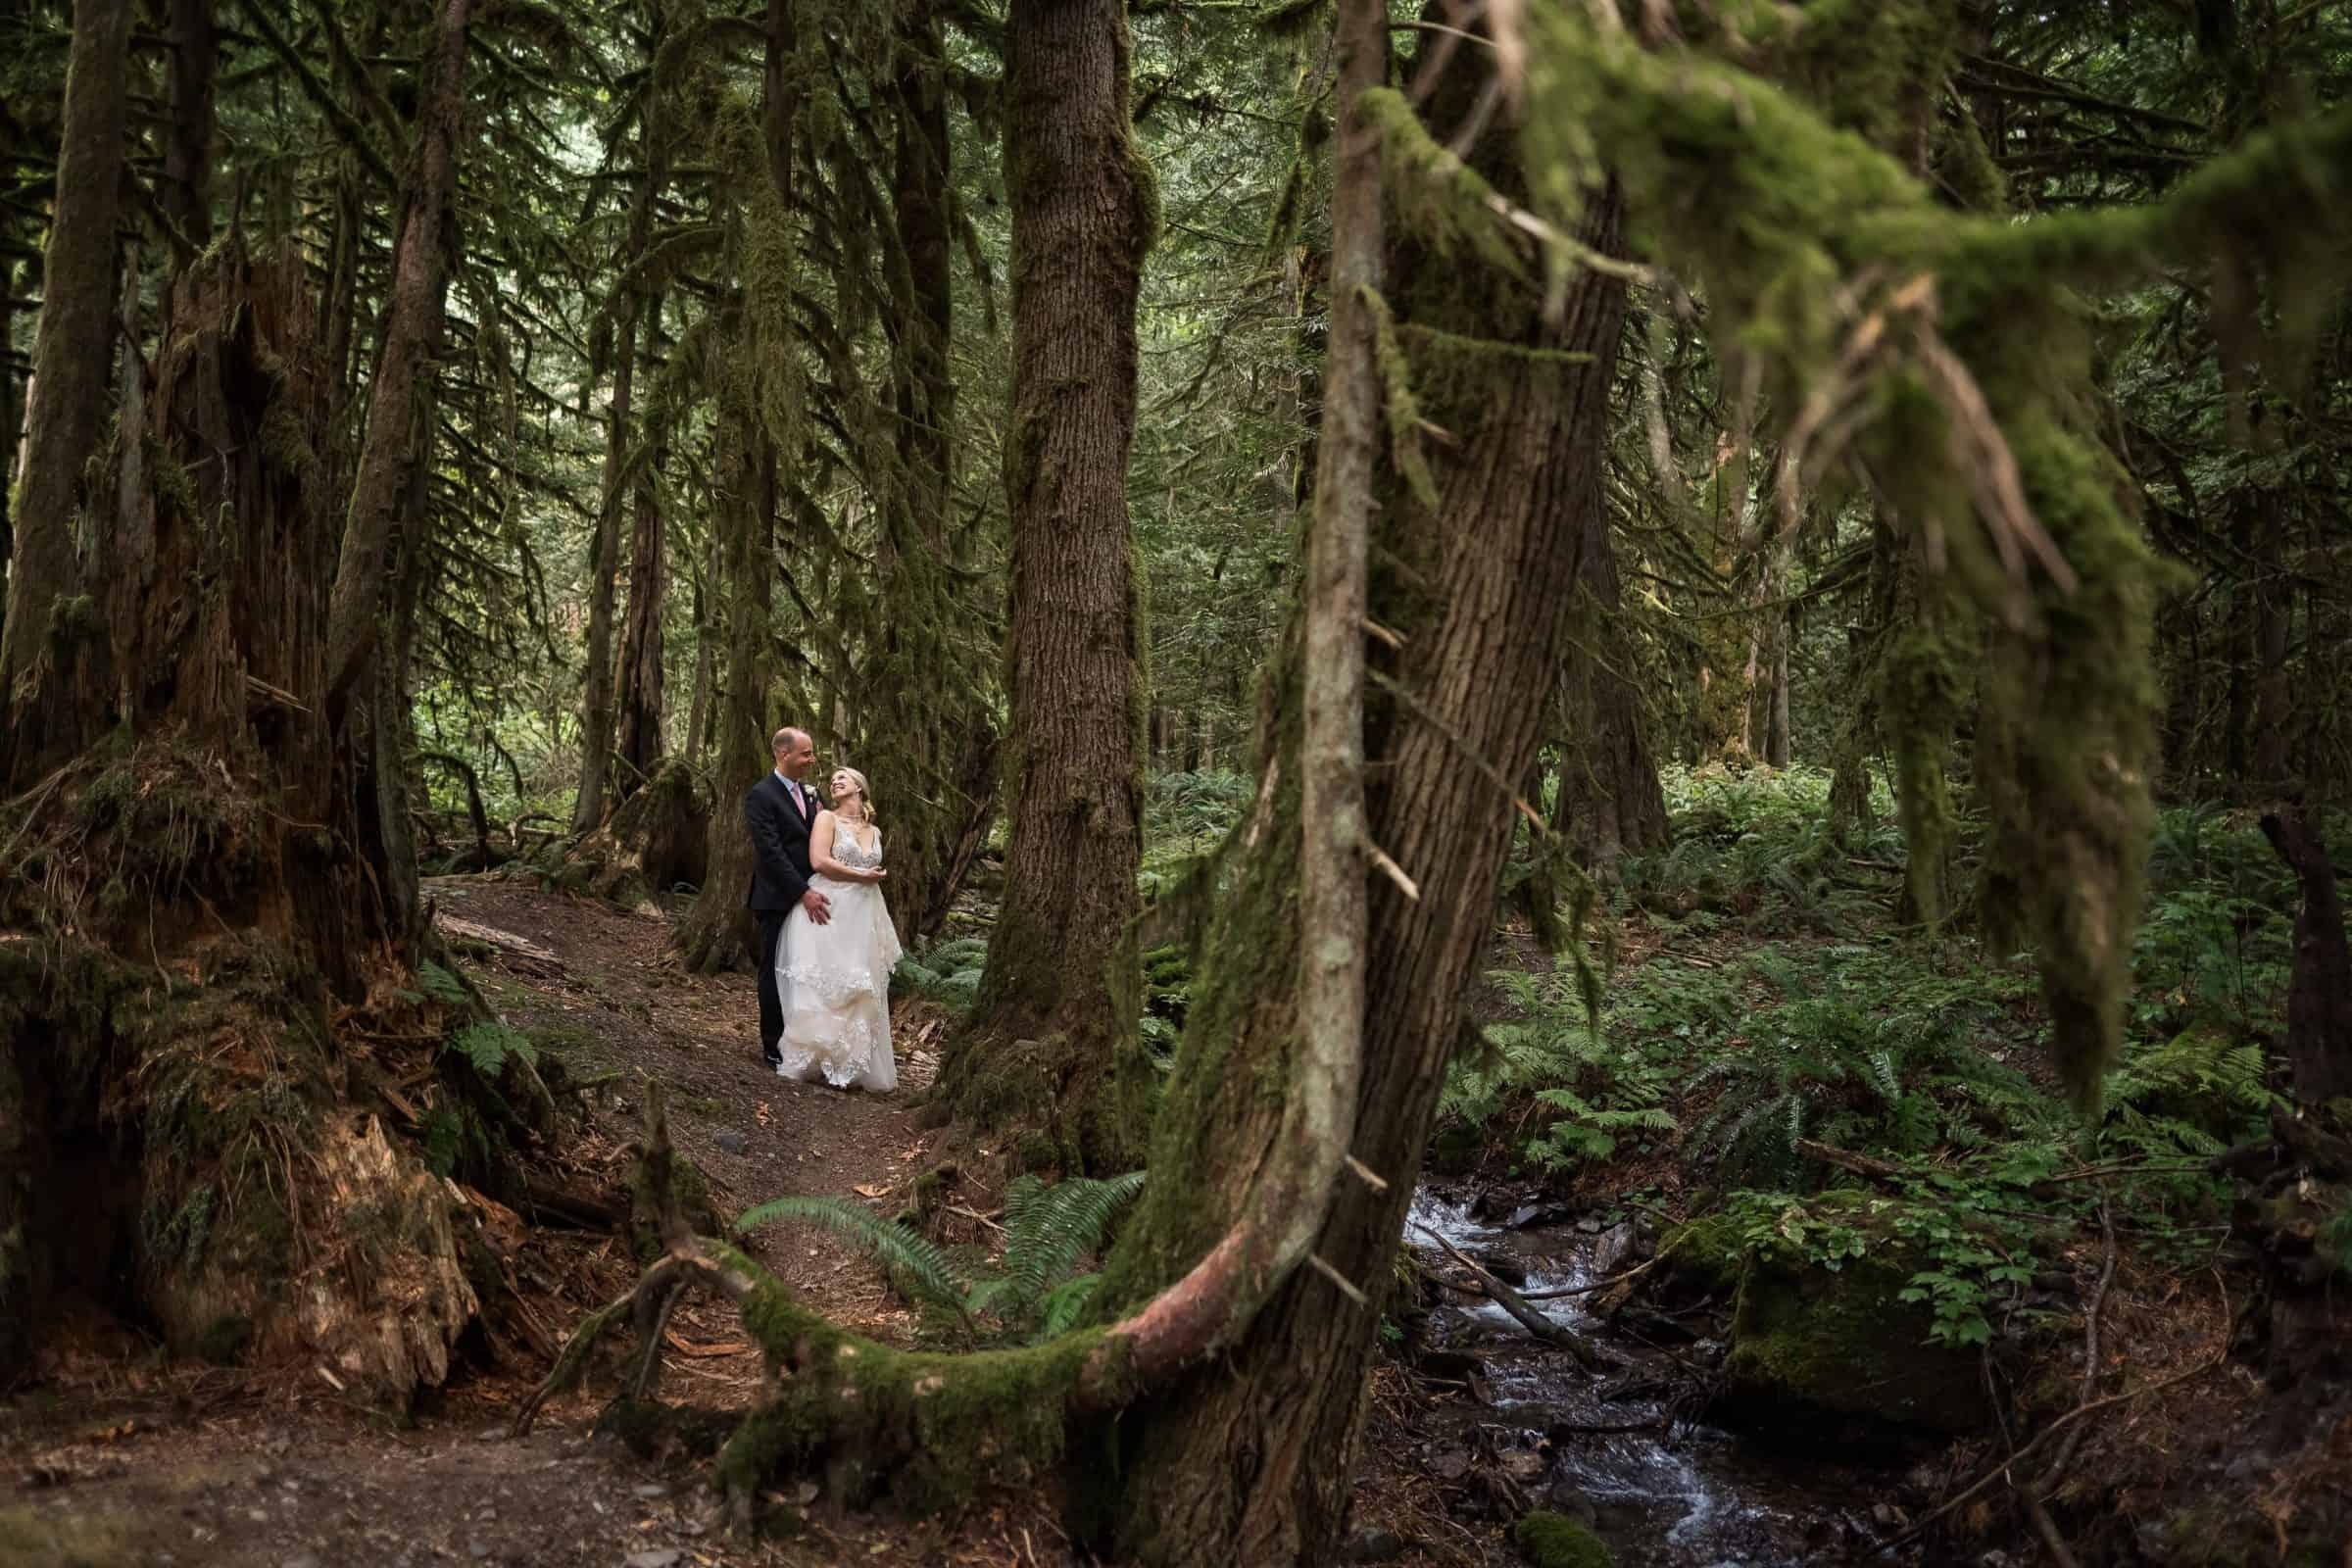 bride and groom holding each other and laughing in forest with river